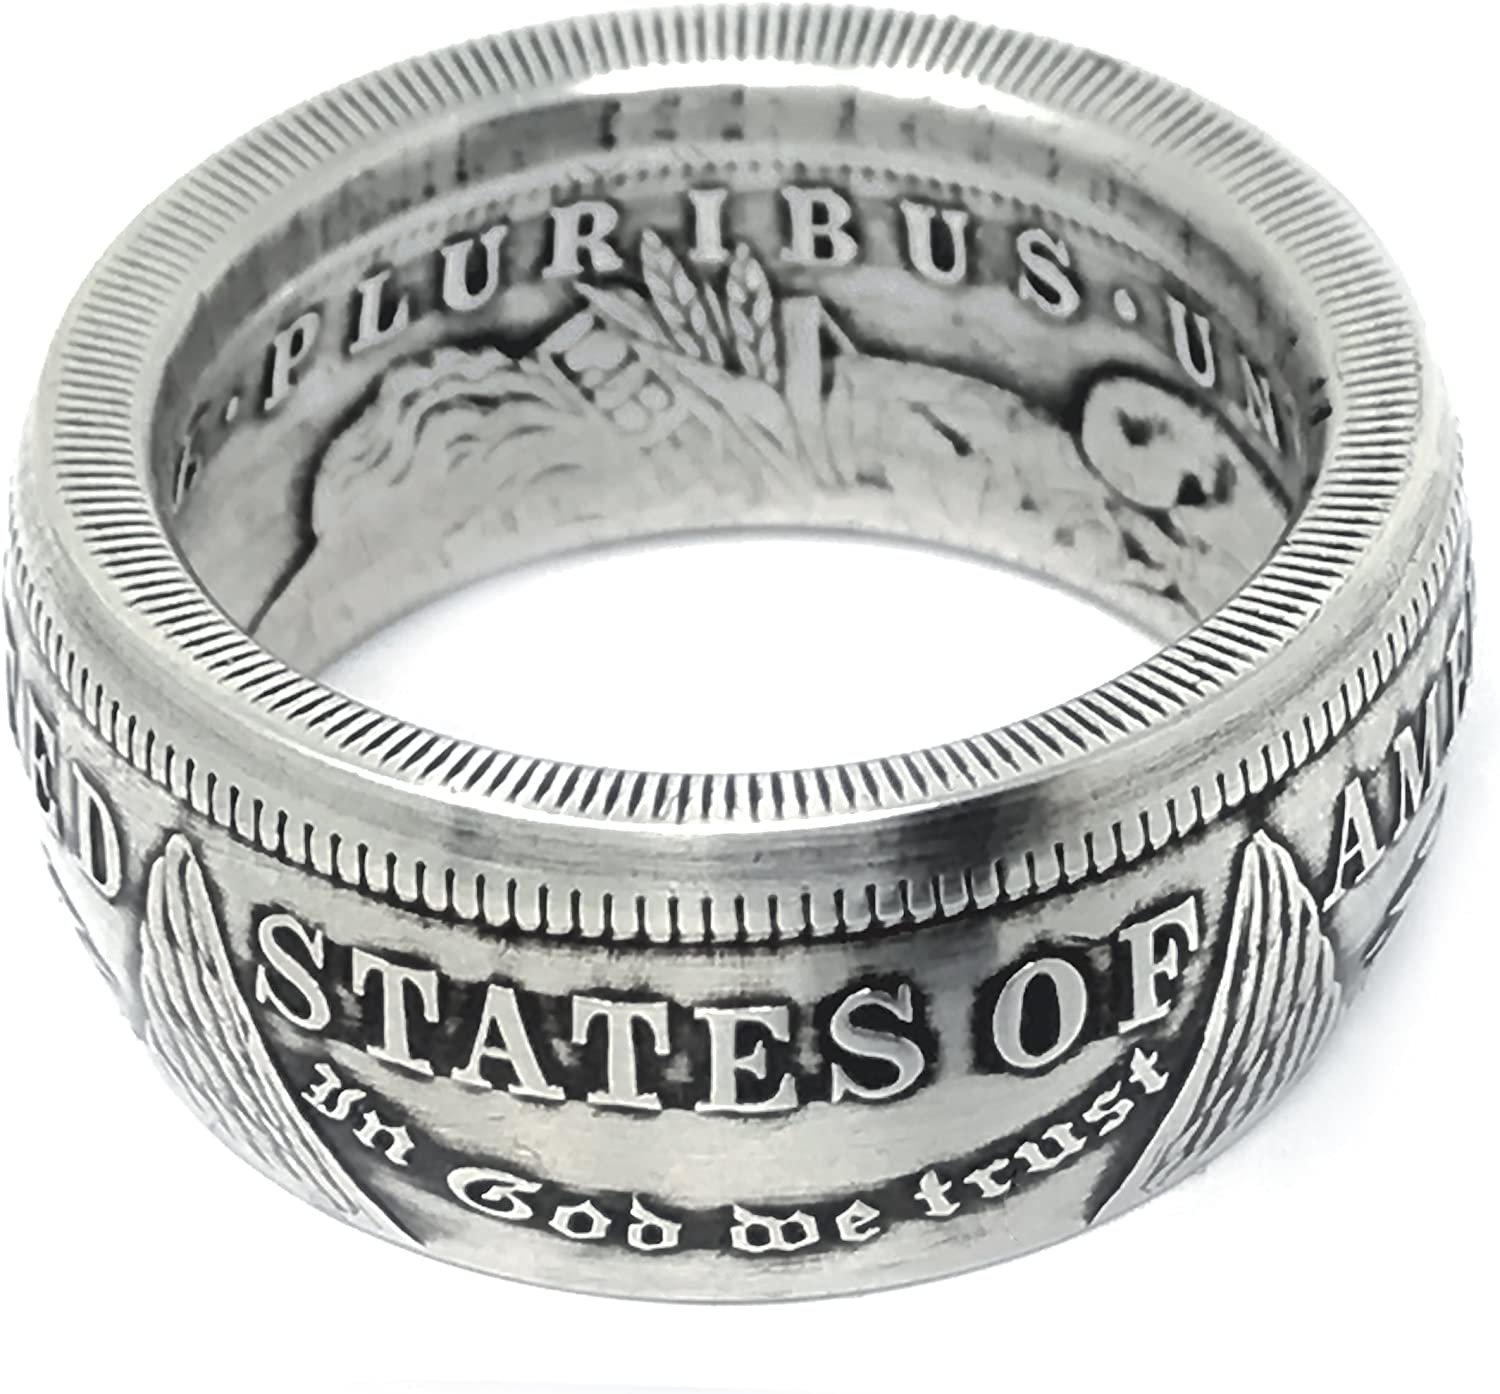 King of Coin Rings Handmade From 1921 a Morgan US Silver Free SEAL limited product shipping anywhere in the nation